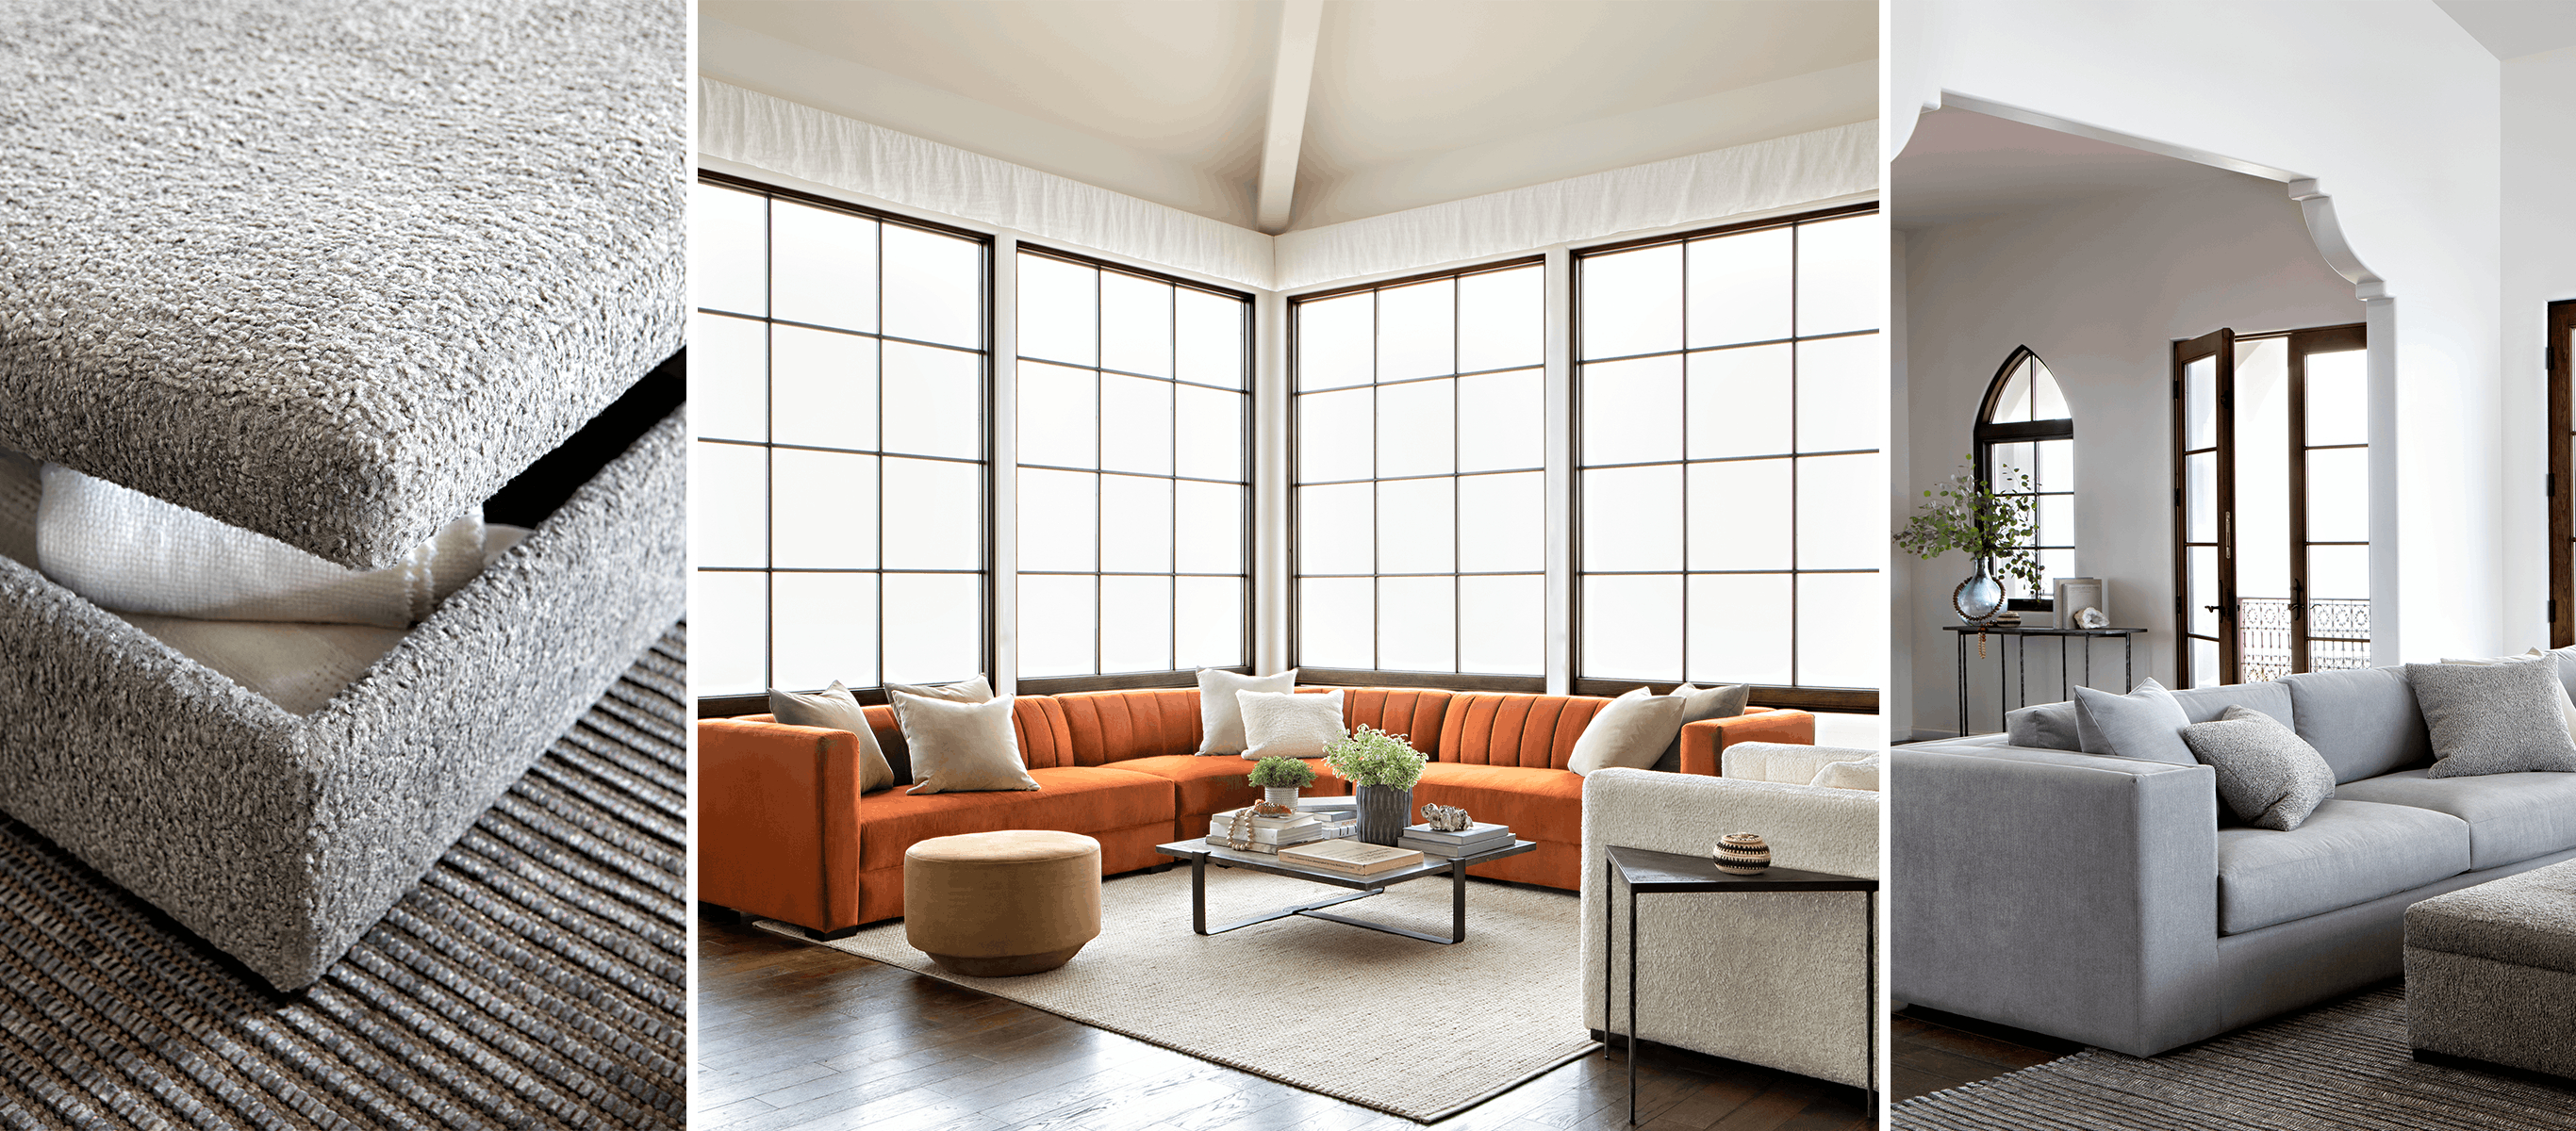 Nate Berkus Just Launched A Home Collection With Hubby Jeremiah In Matteo Arm Sofa Chairs By Nate Berkus And Jeremiah Brent (Image 15 of 25)